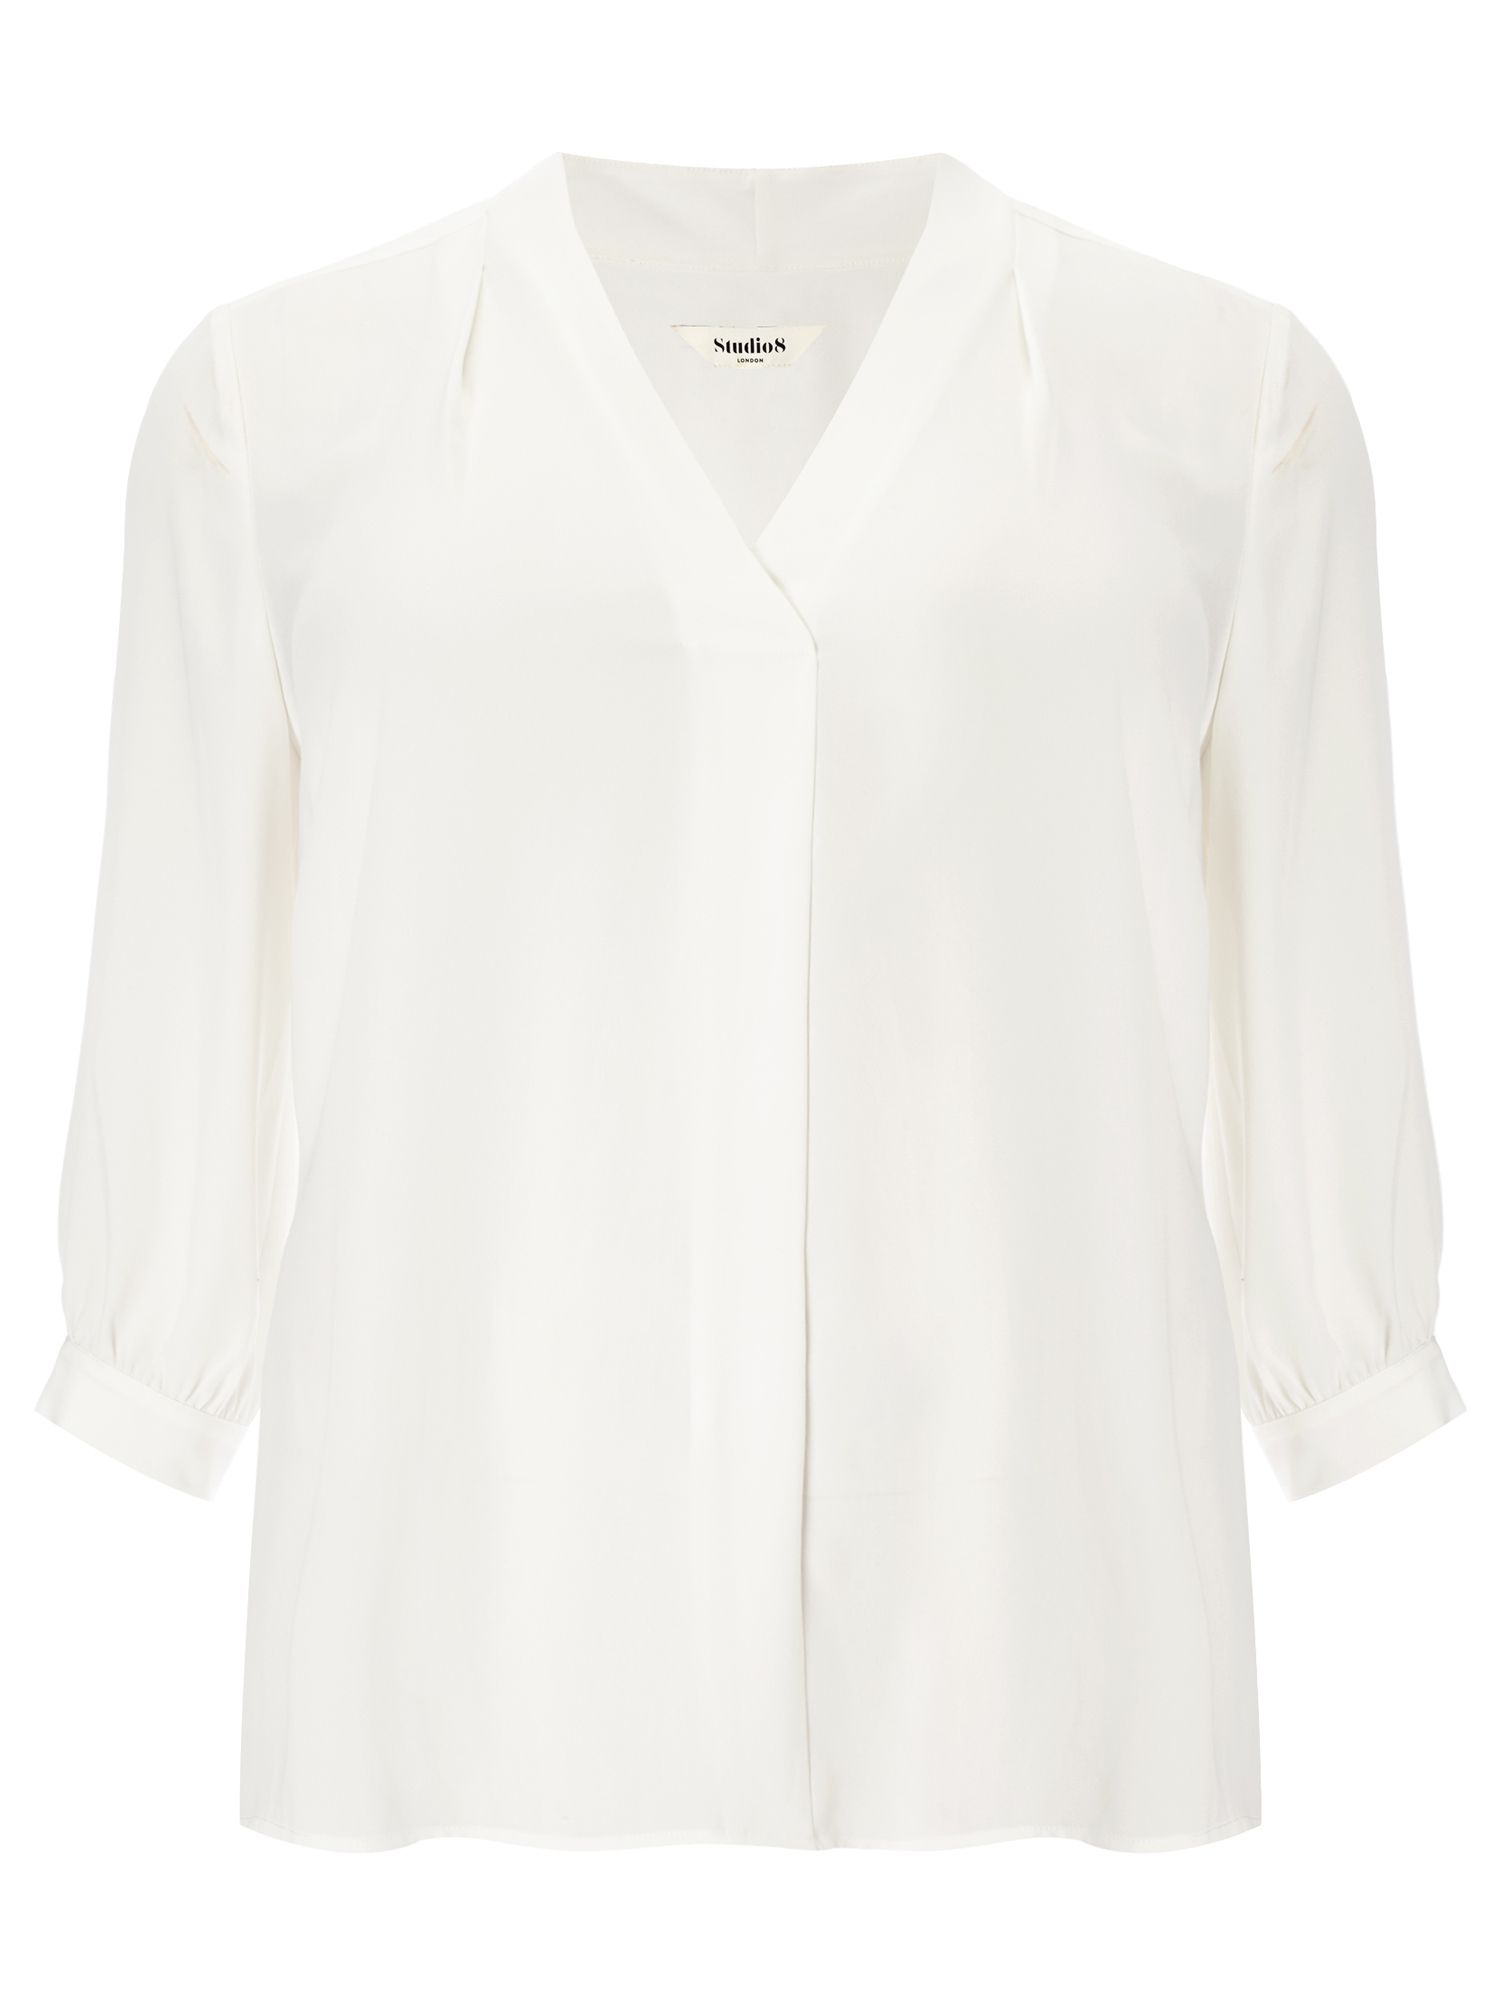 Studio 8 Abbie blouse, Cream